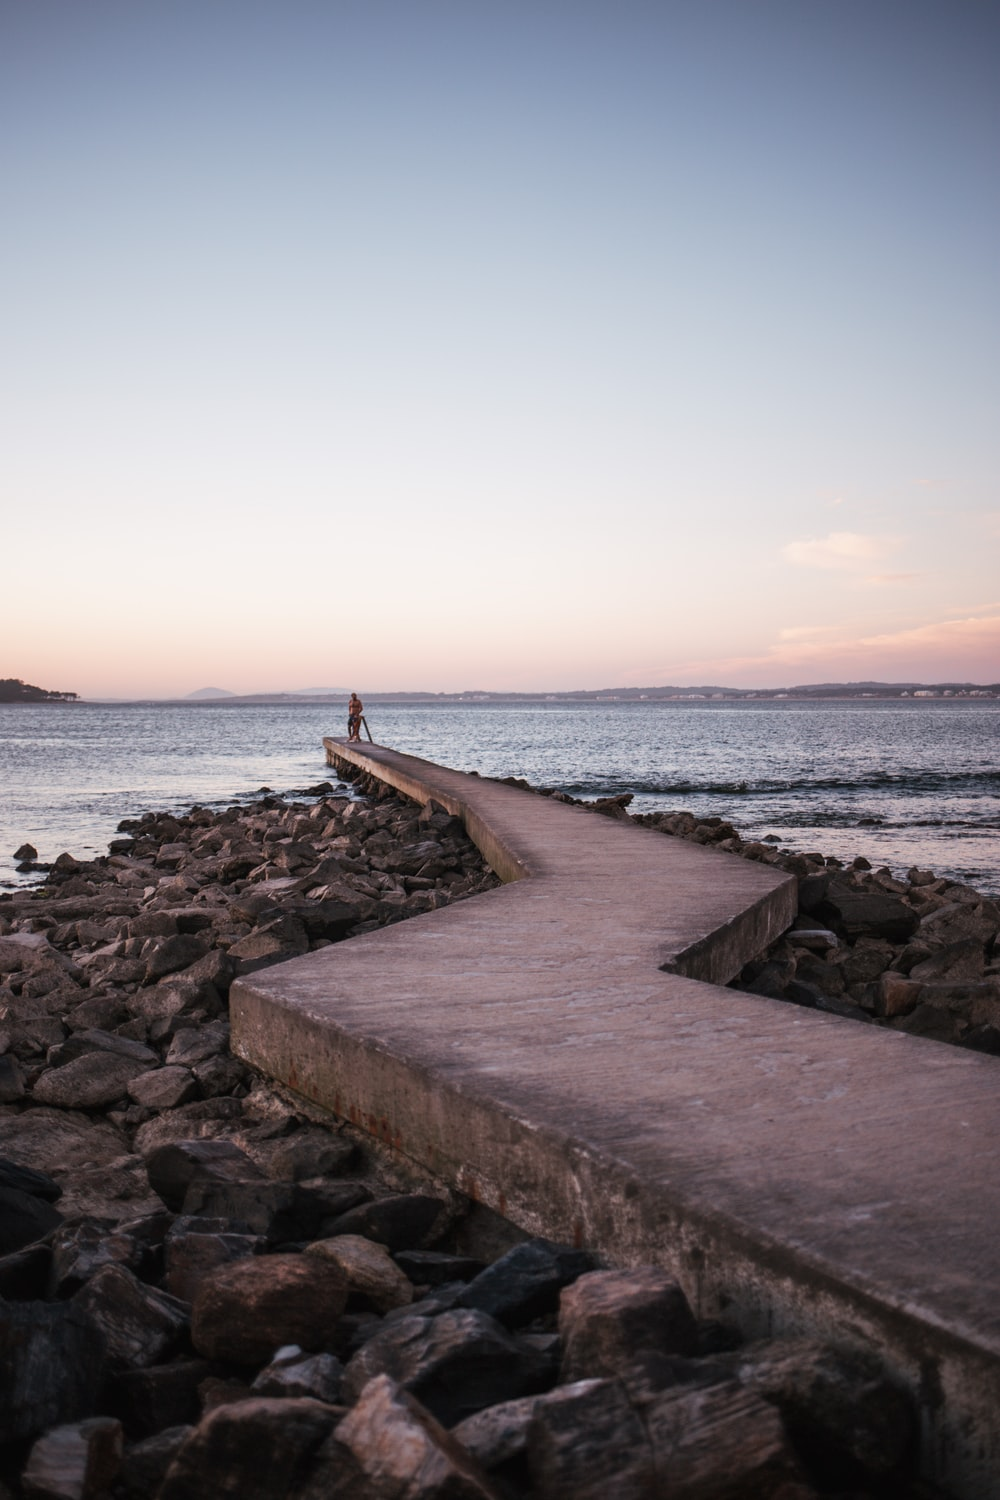 concrete pathway on rocky shore during day